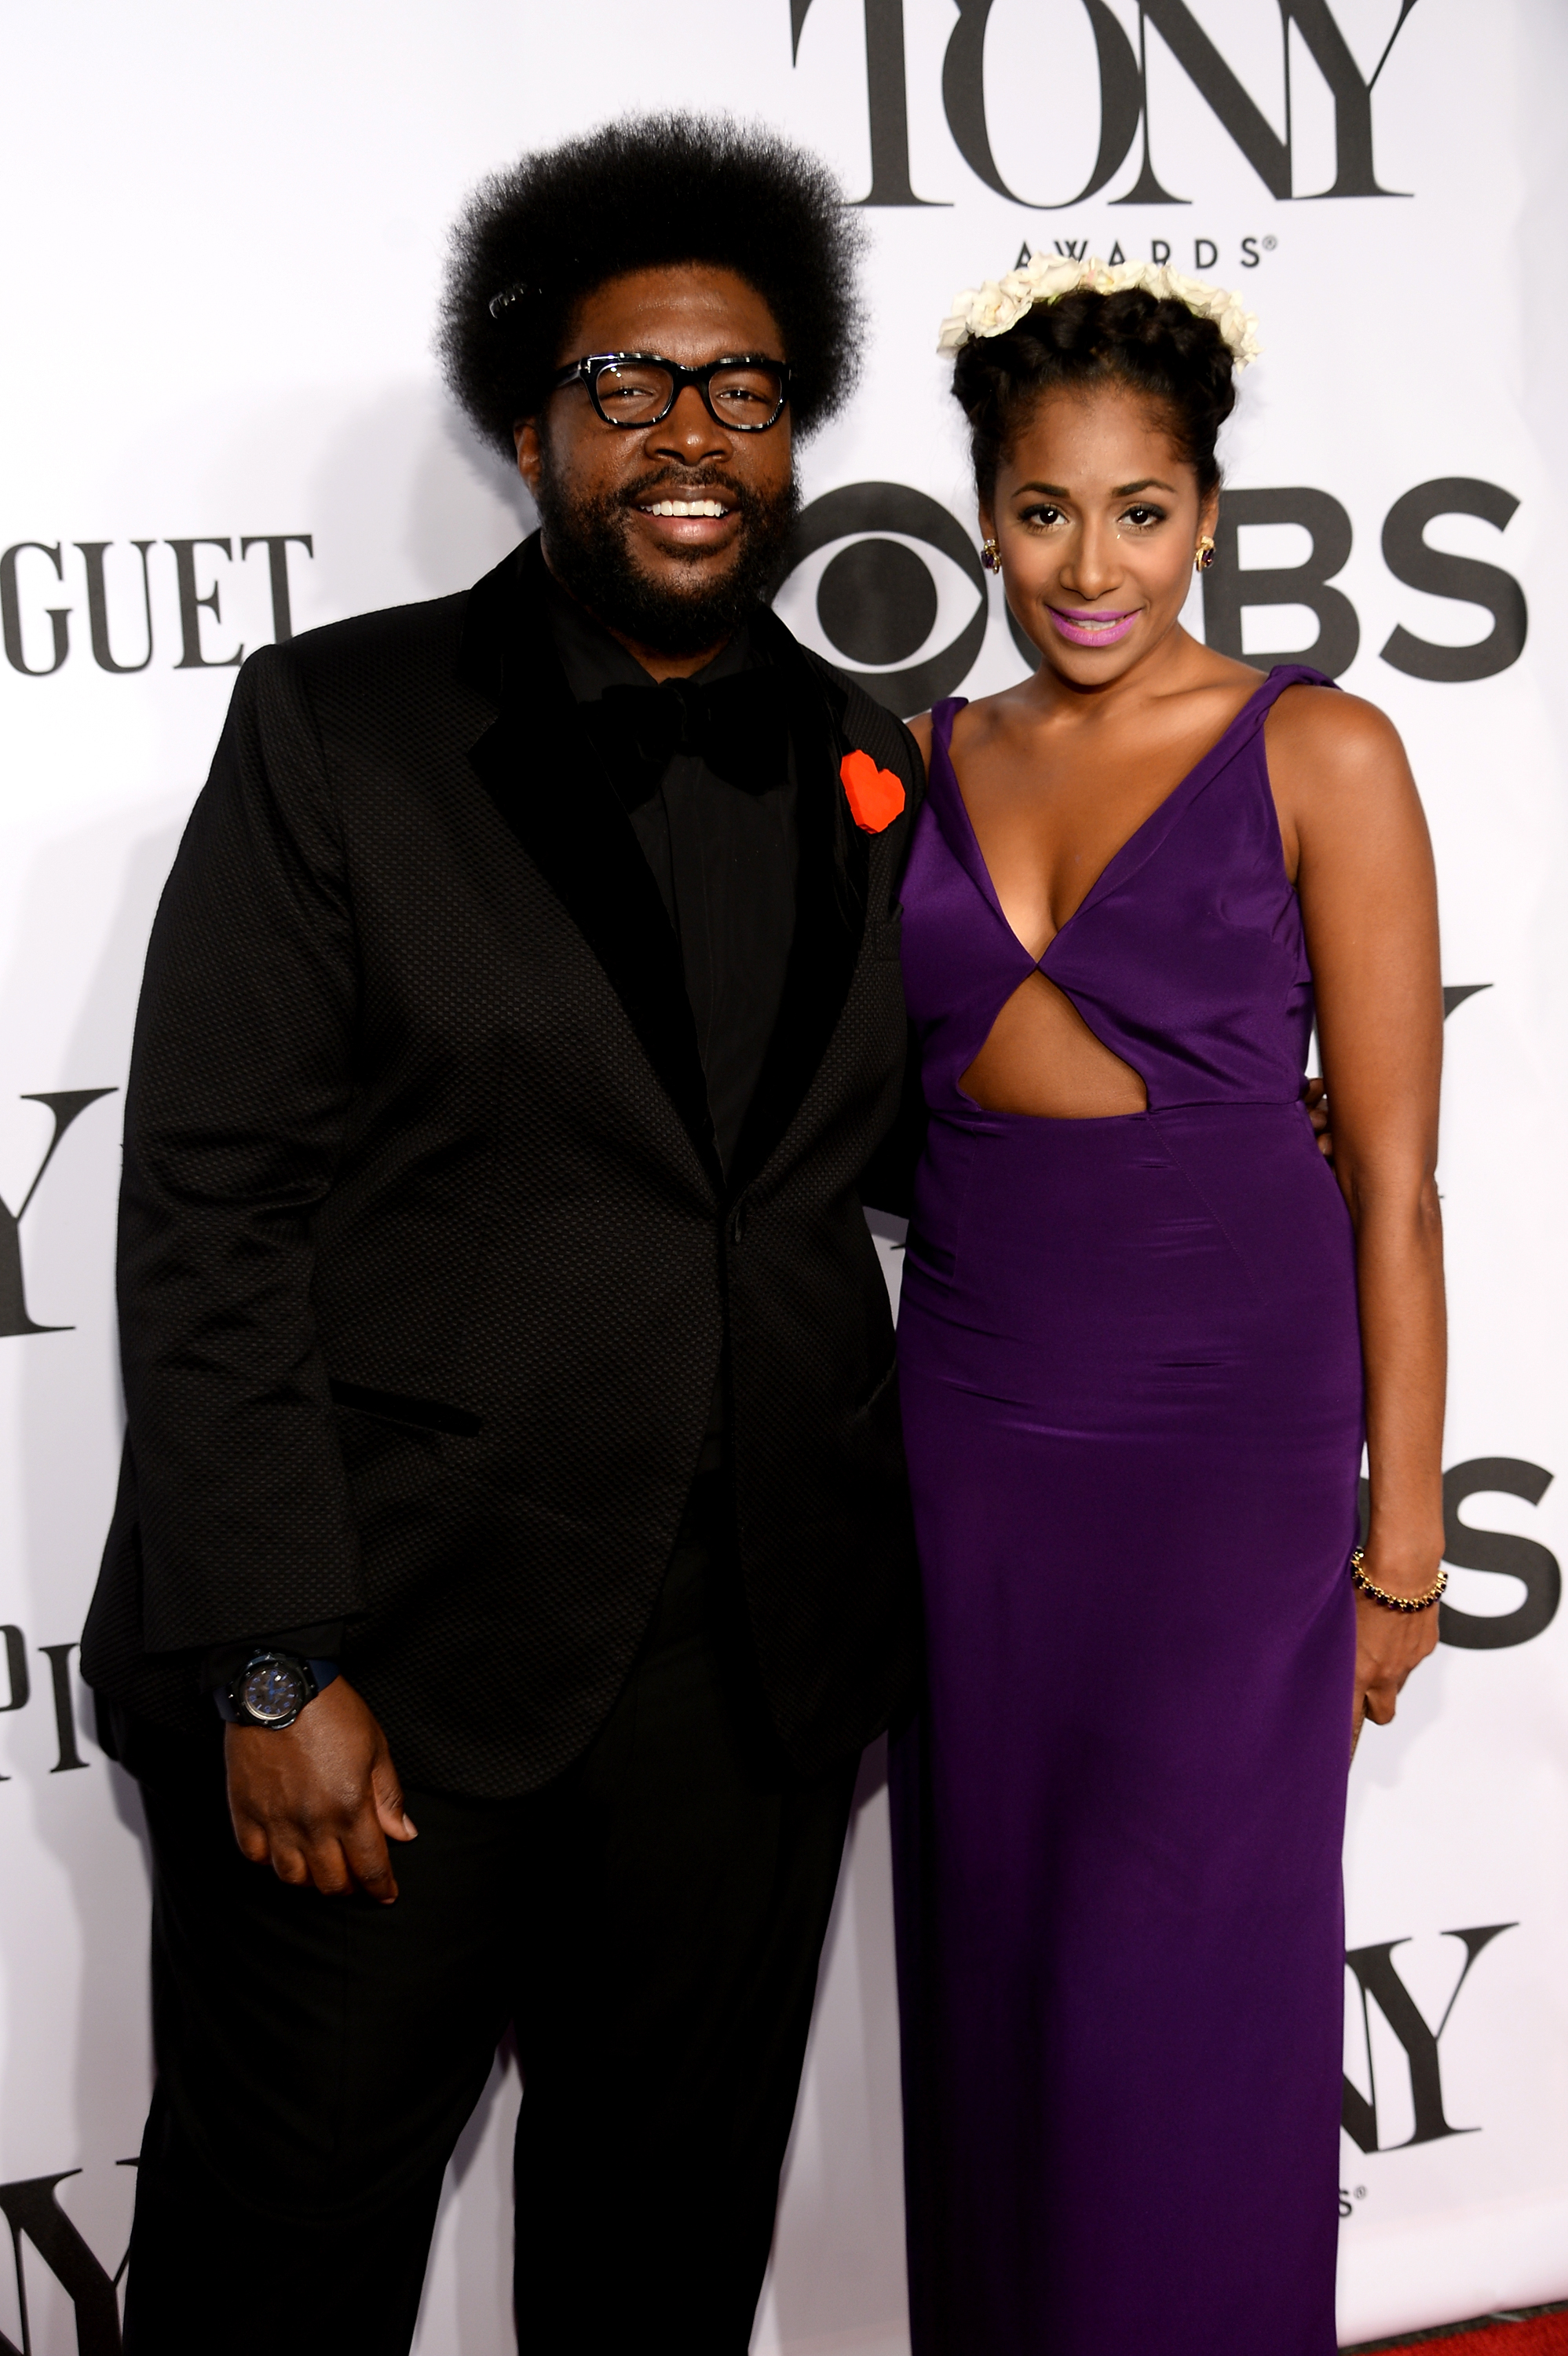 Questlove, left, attends the 68th Annual Tony Awards at Radio City Music Hall on June 8, 2014 in New York City.